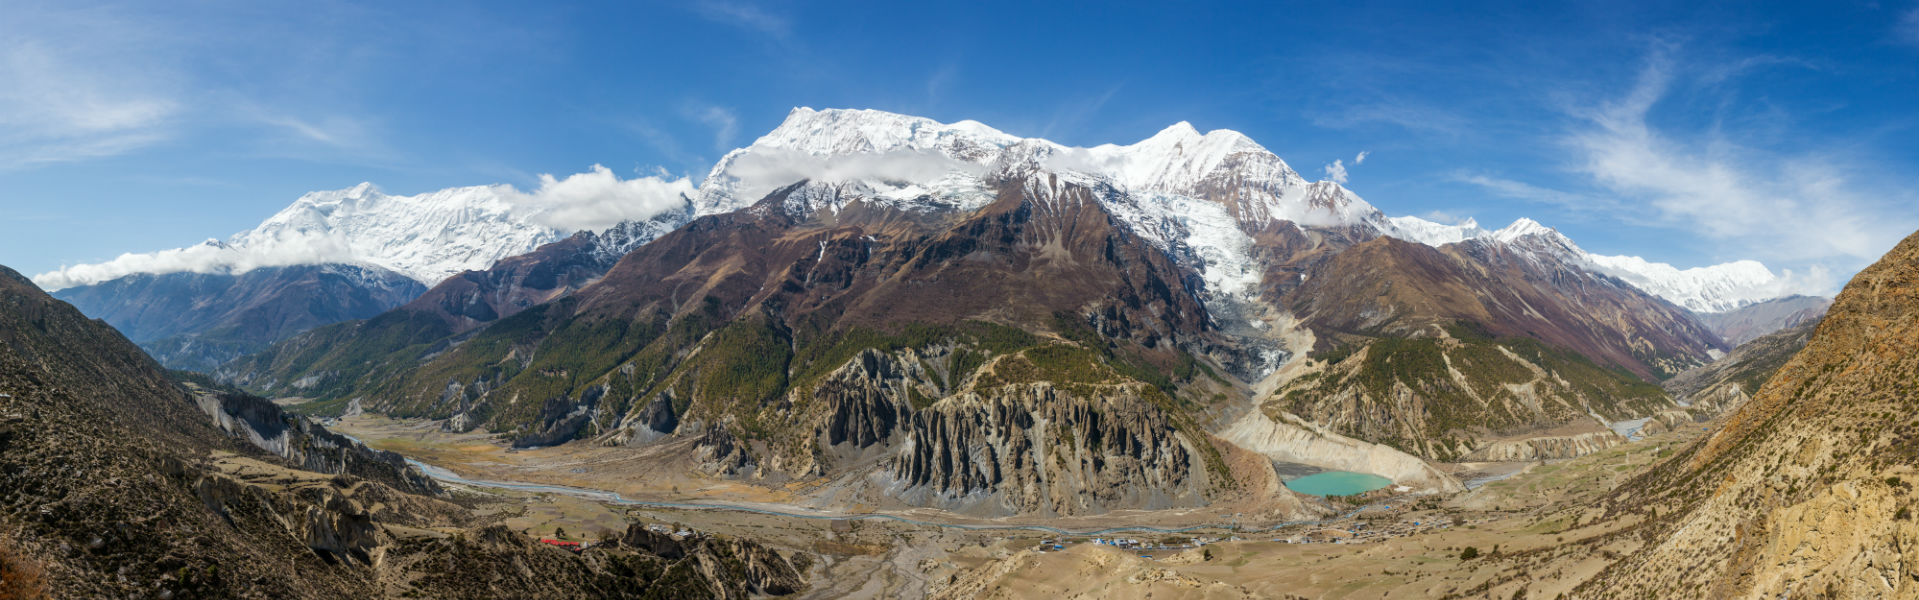 How to choose a trek in Nepal: Annapurna Circuit Trek Panorama of Gangapurna mountain, glacier and lake near Manang